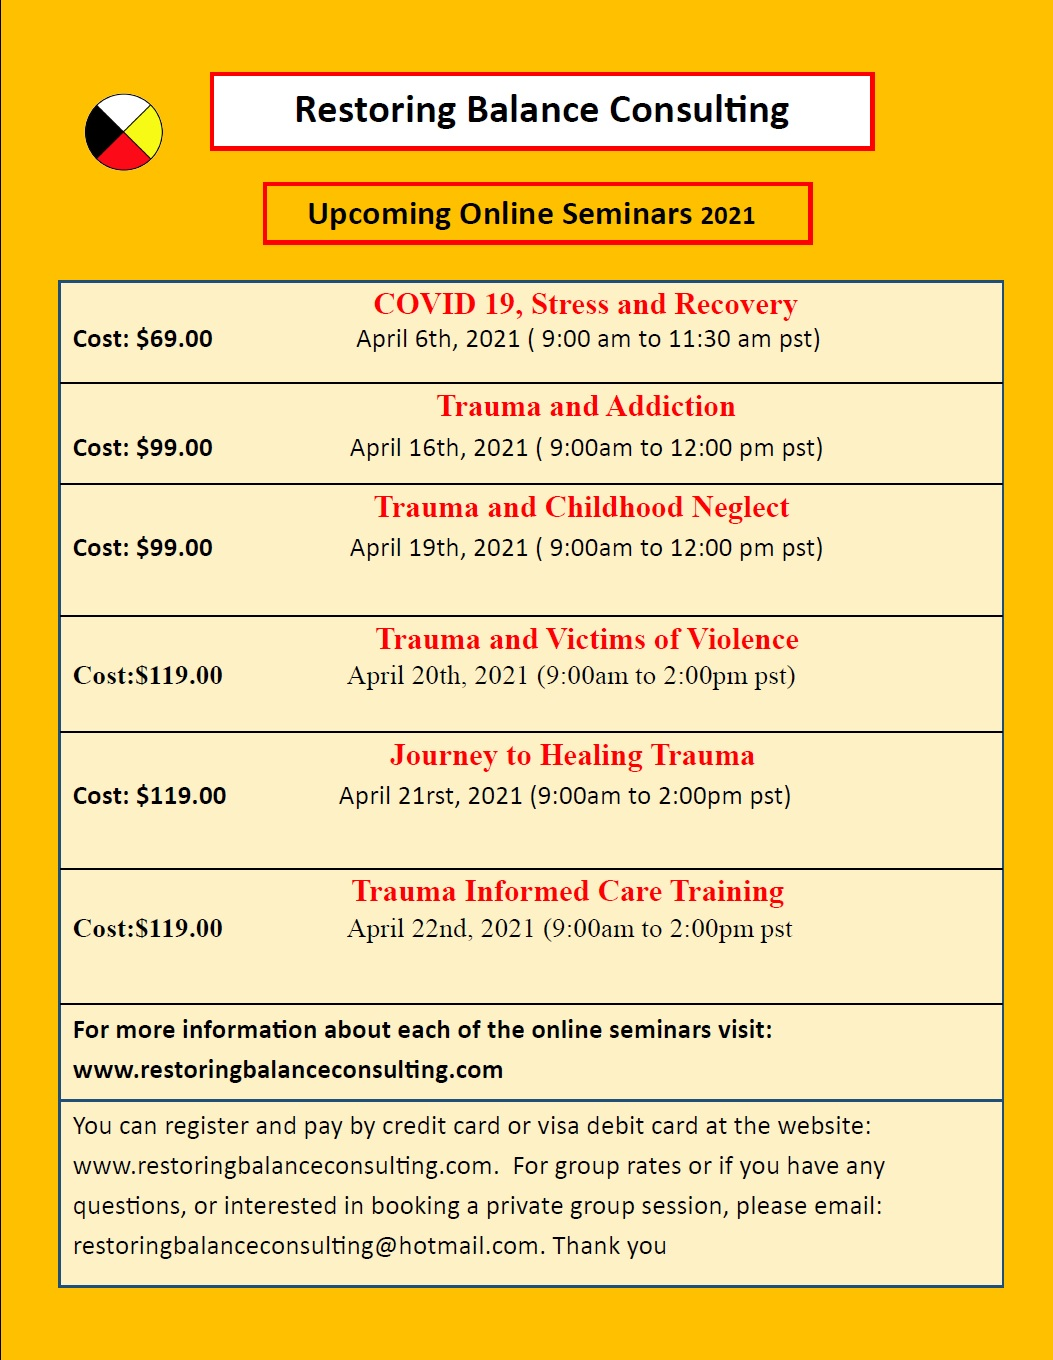 Online Seminars with Restoring Balance Consulting